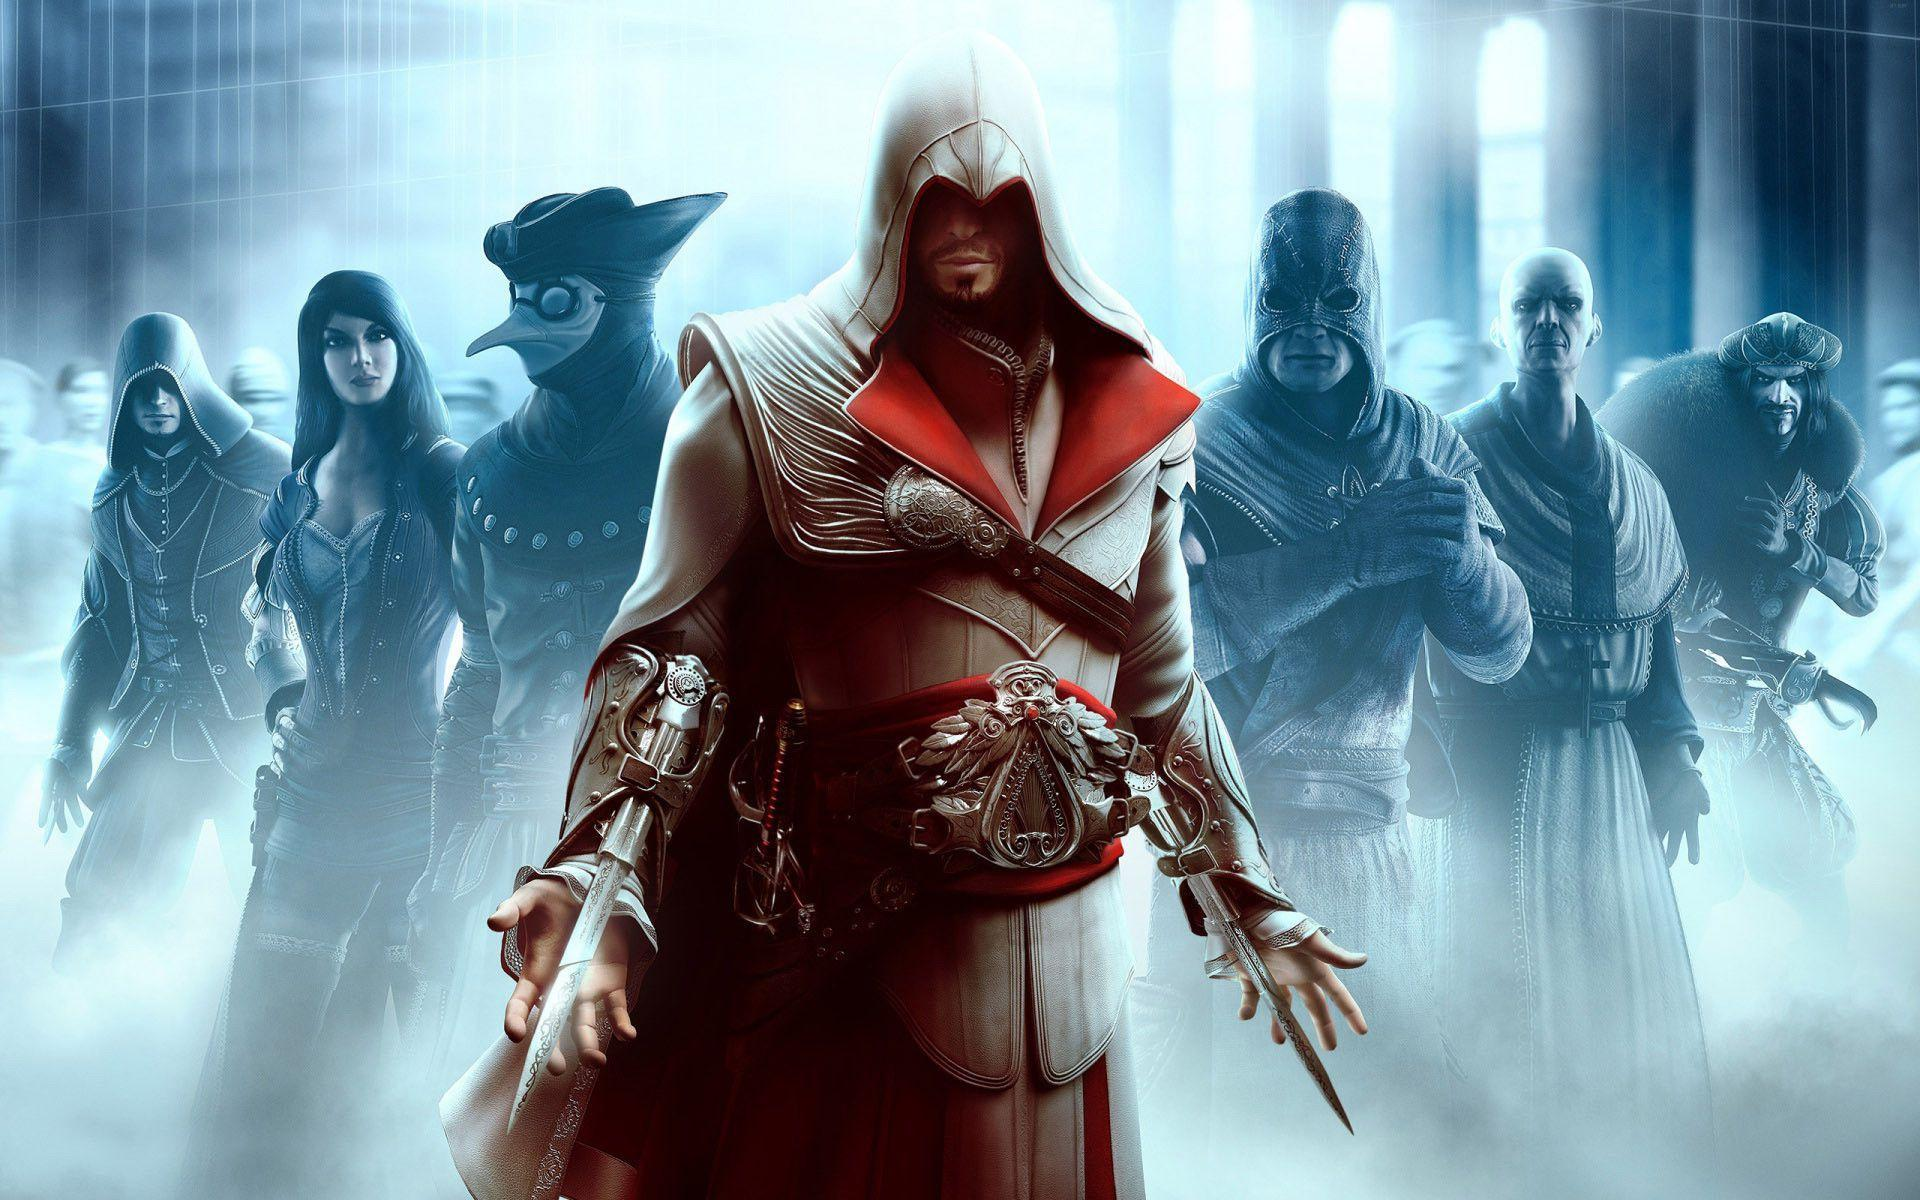 Assassins Creed Brotherhood Wallpapers 1920x1200